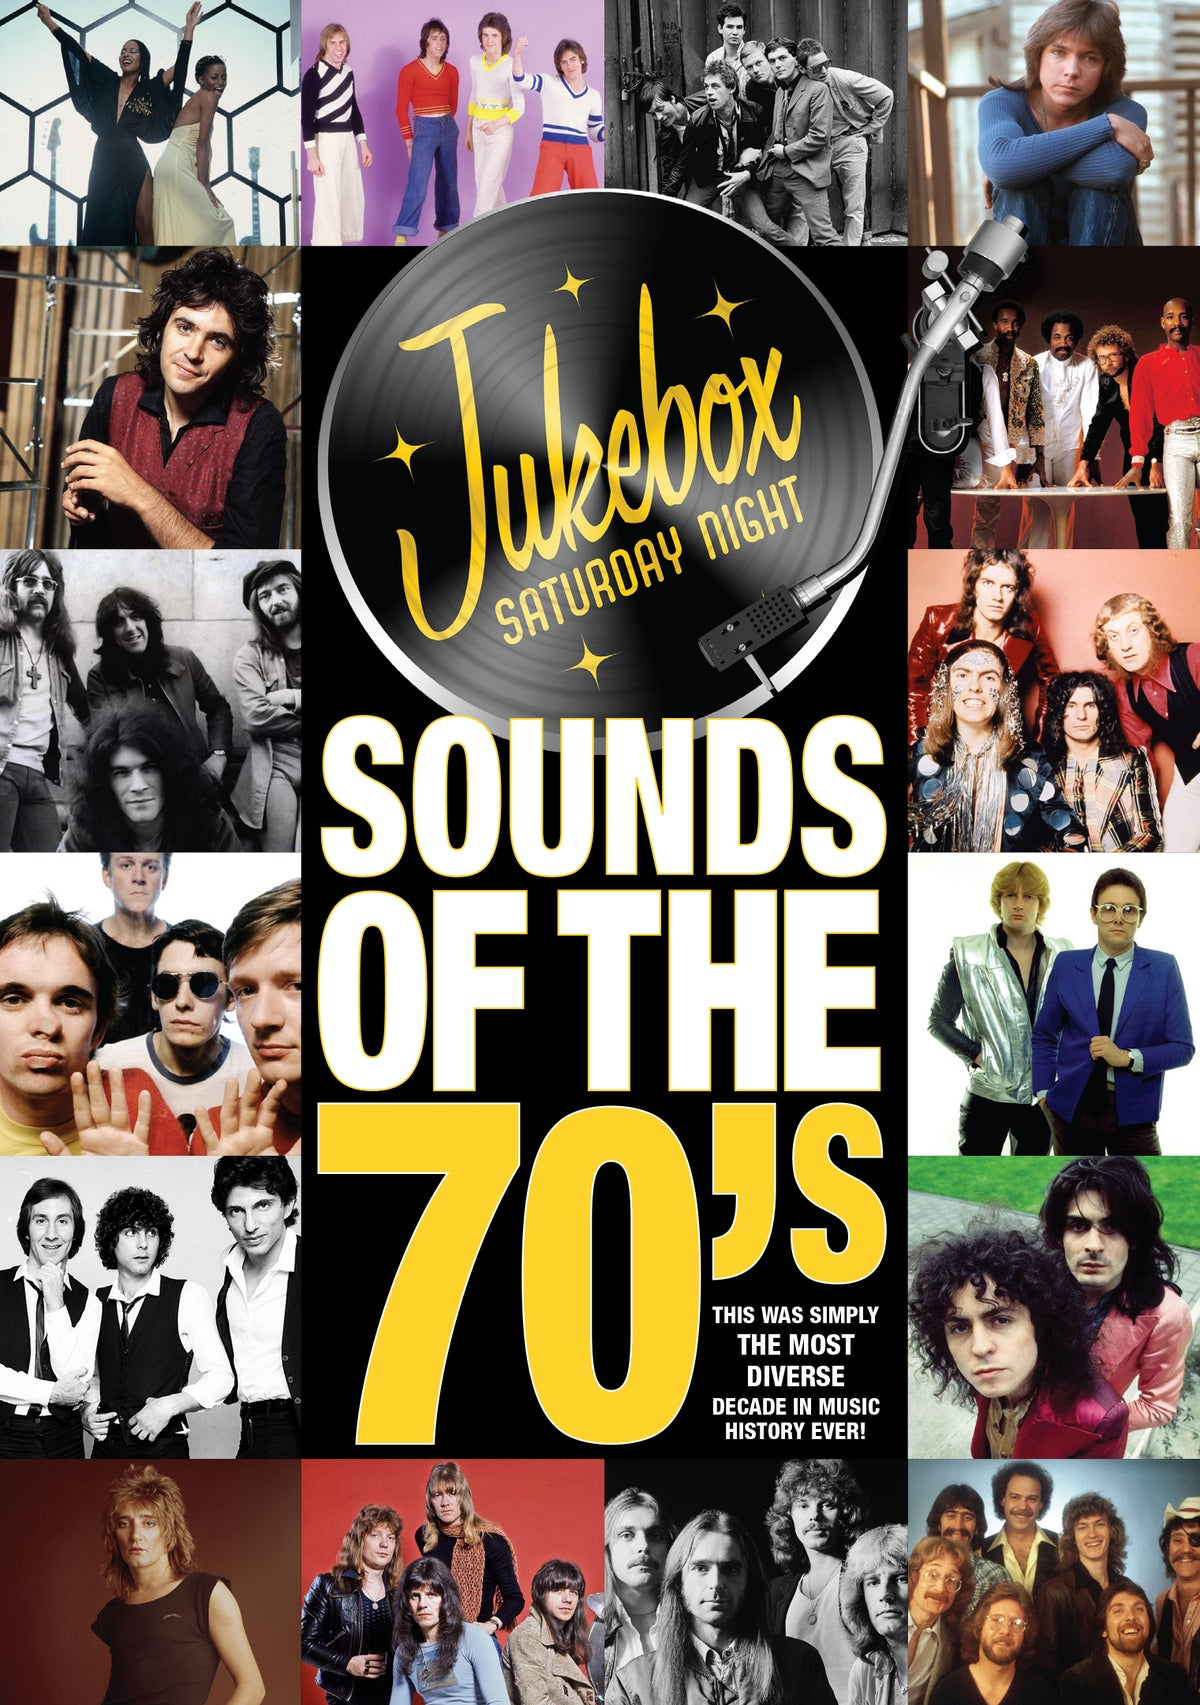 FANFARE290 - VARIOUS ARTISTS - JUKEBOX SATURDAY NIGHT, SOUNDS OF THE SEVENTIES.jpg